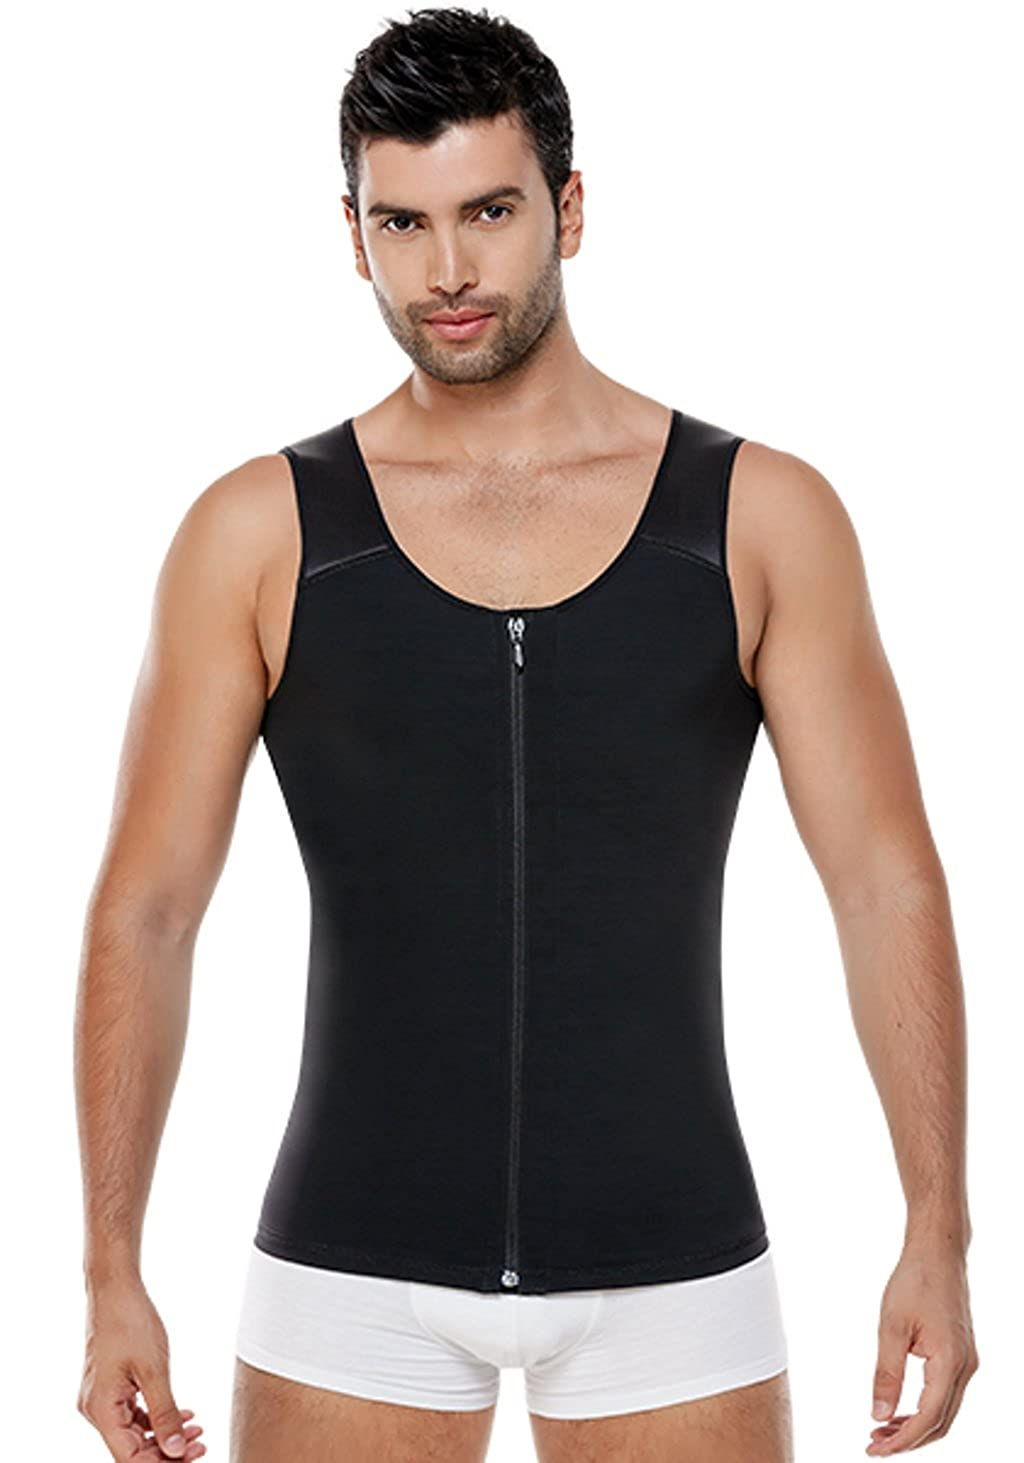 Mens Reductoras Colombianas Para Hombre Ultra Control sold by Just Us Store